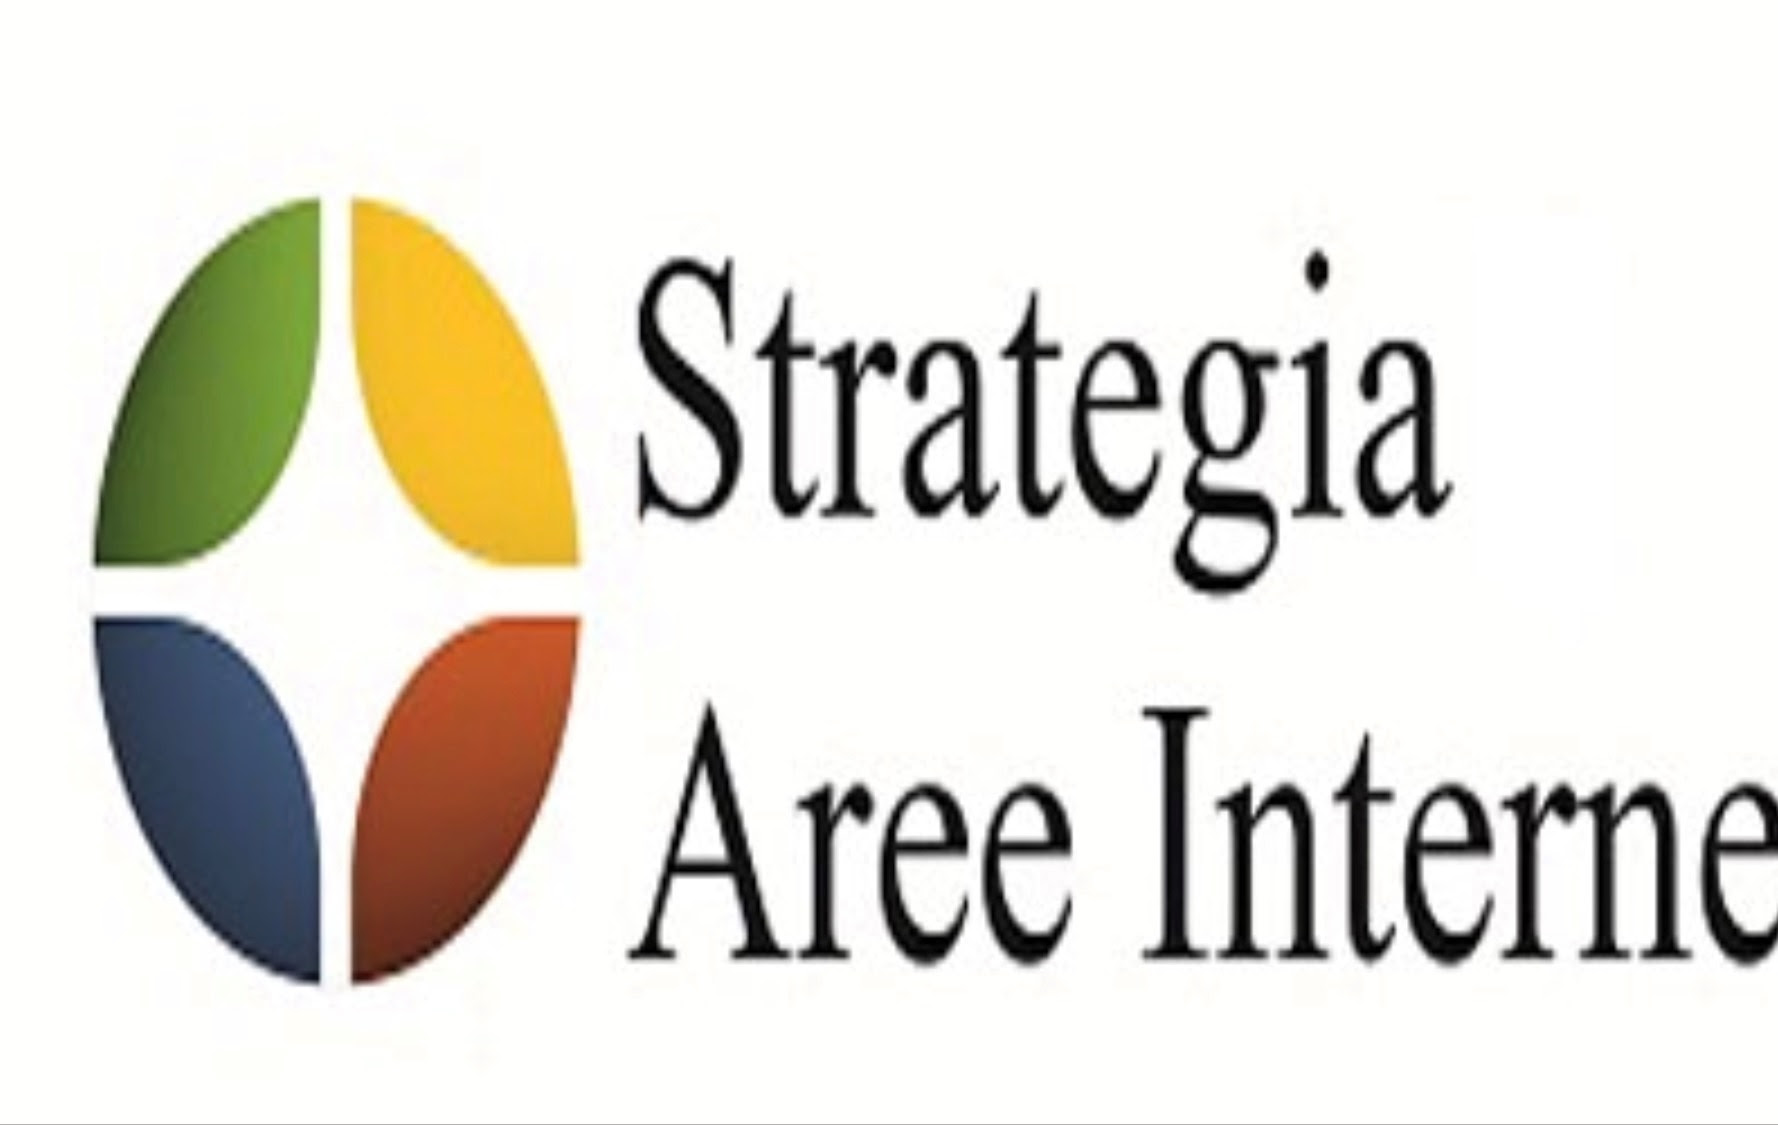 logo Strategia aree interne